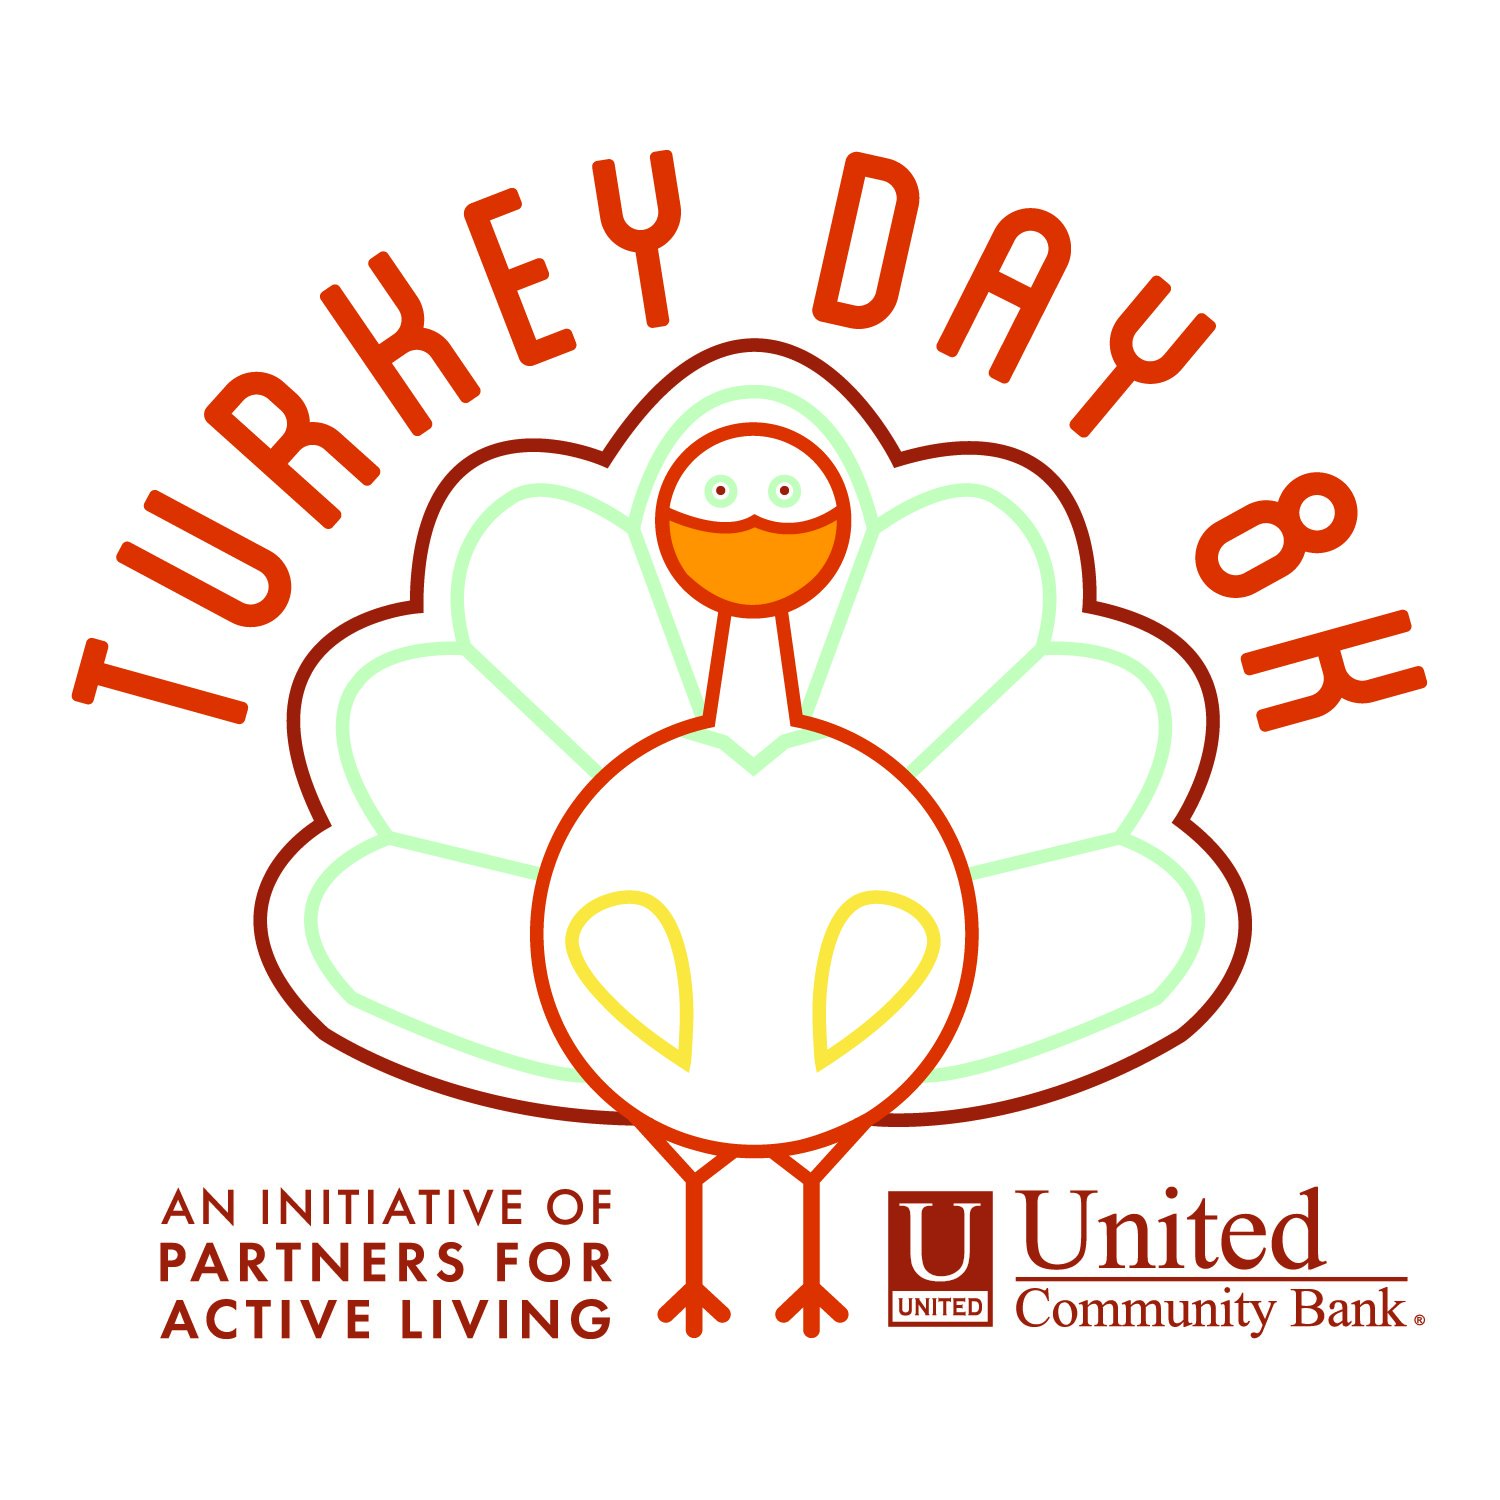 Partners for Active Living 16th Annual United Community Bank Turkey Day 8K